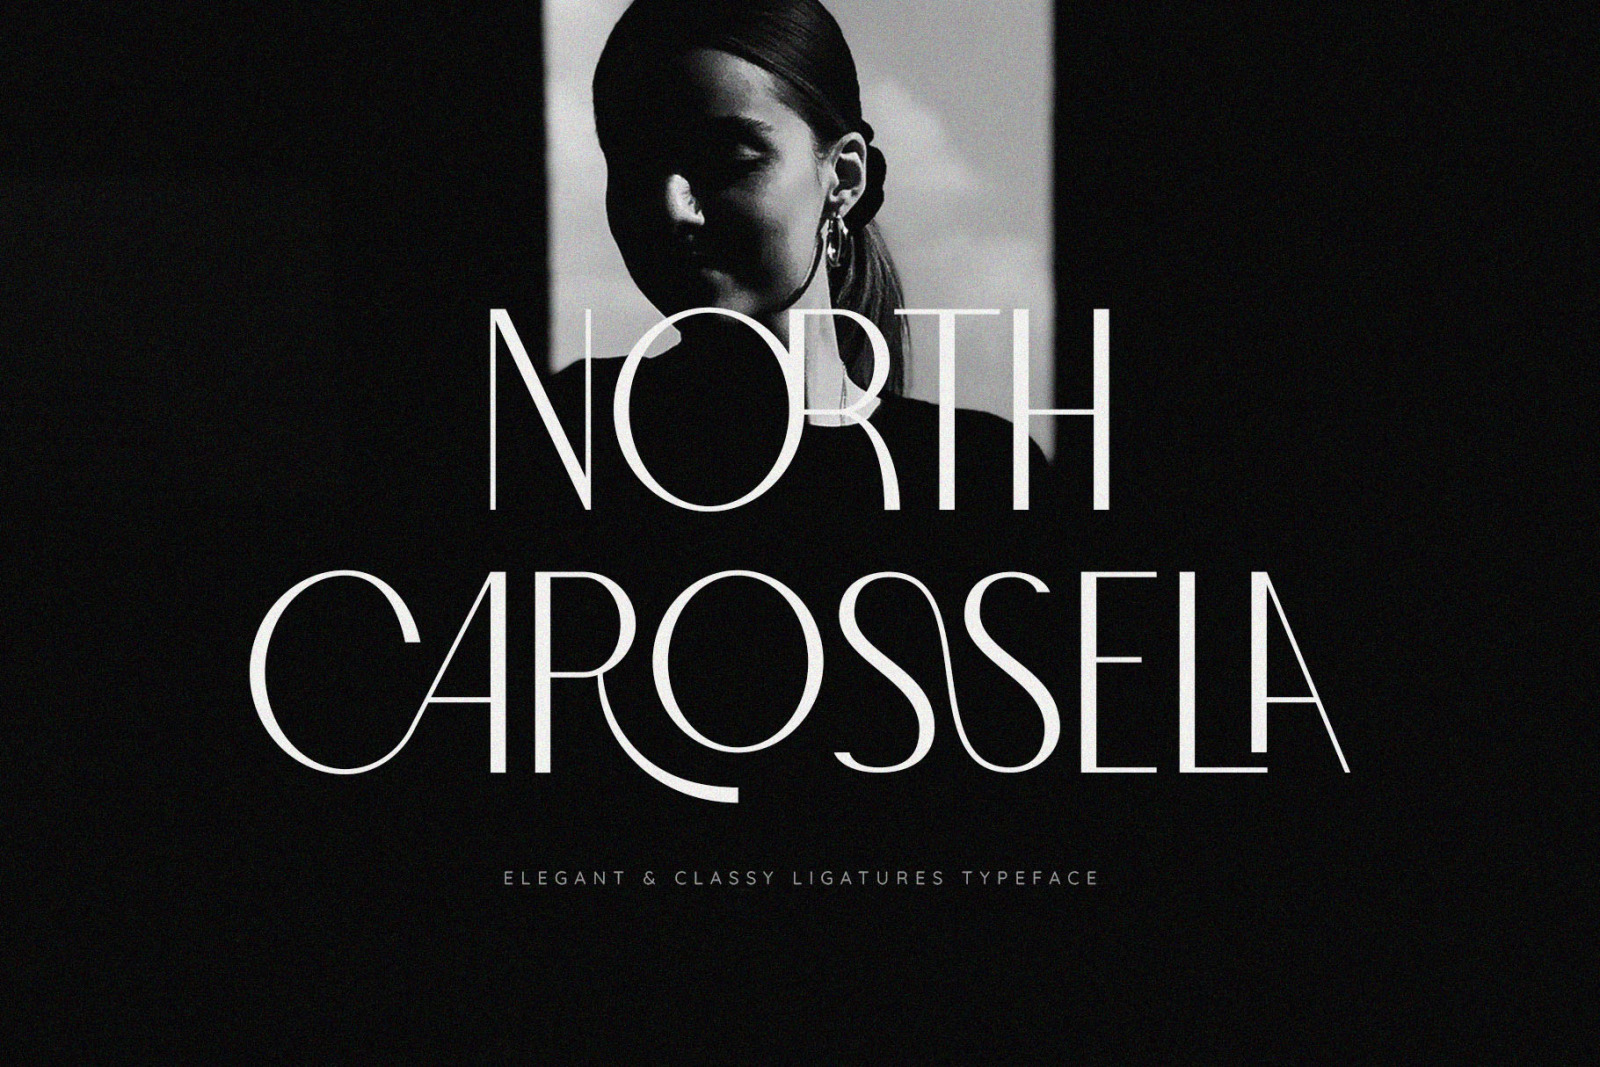 North Carossela || A Ligature Sans